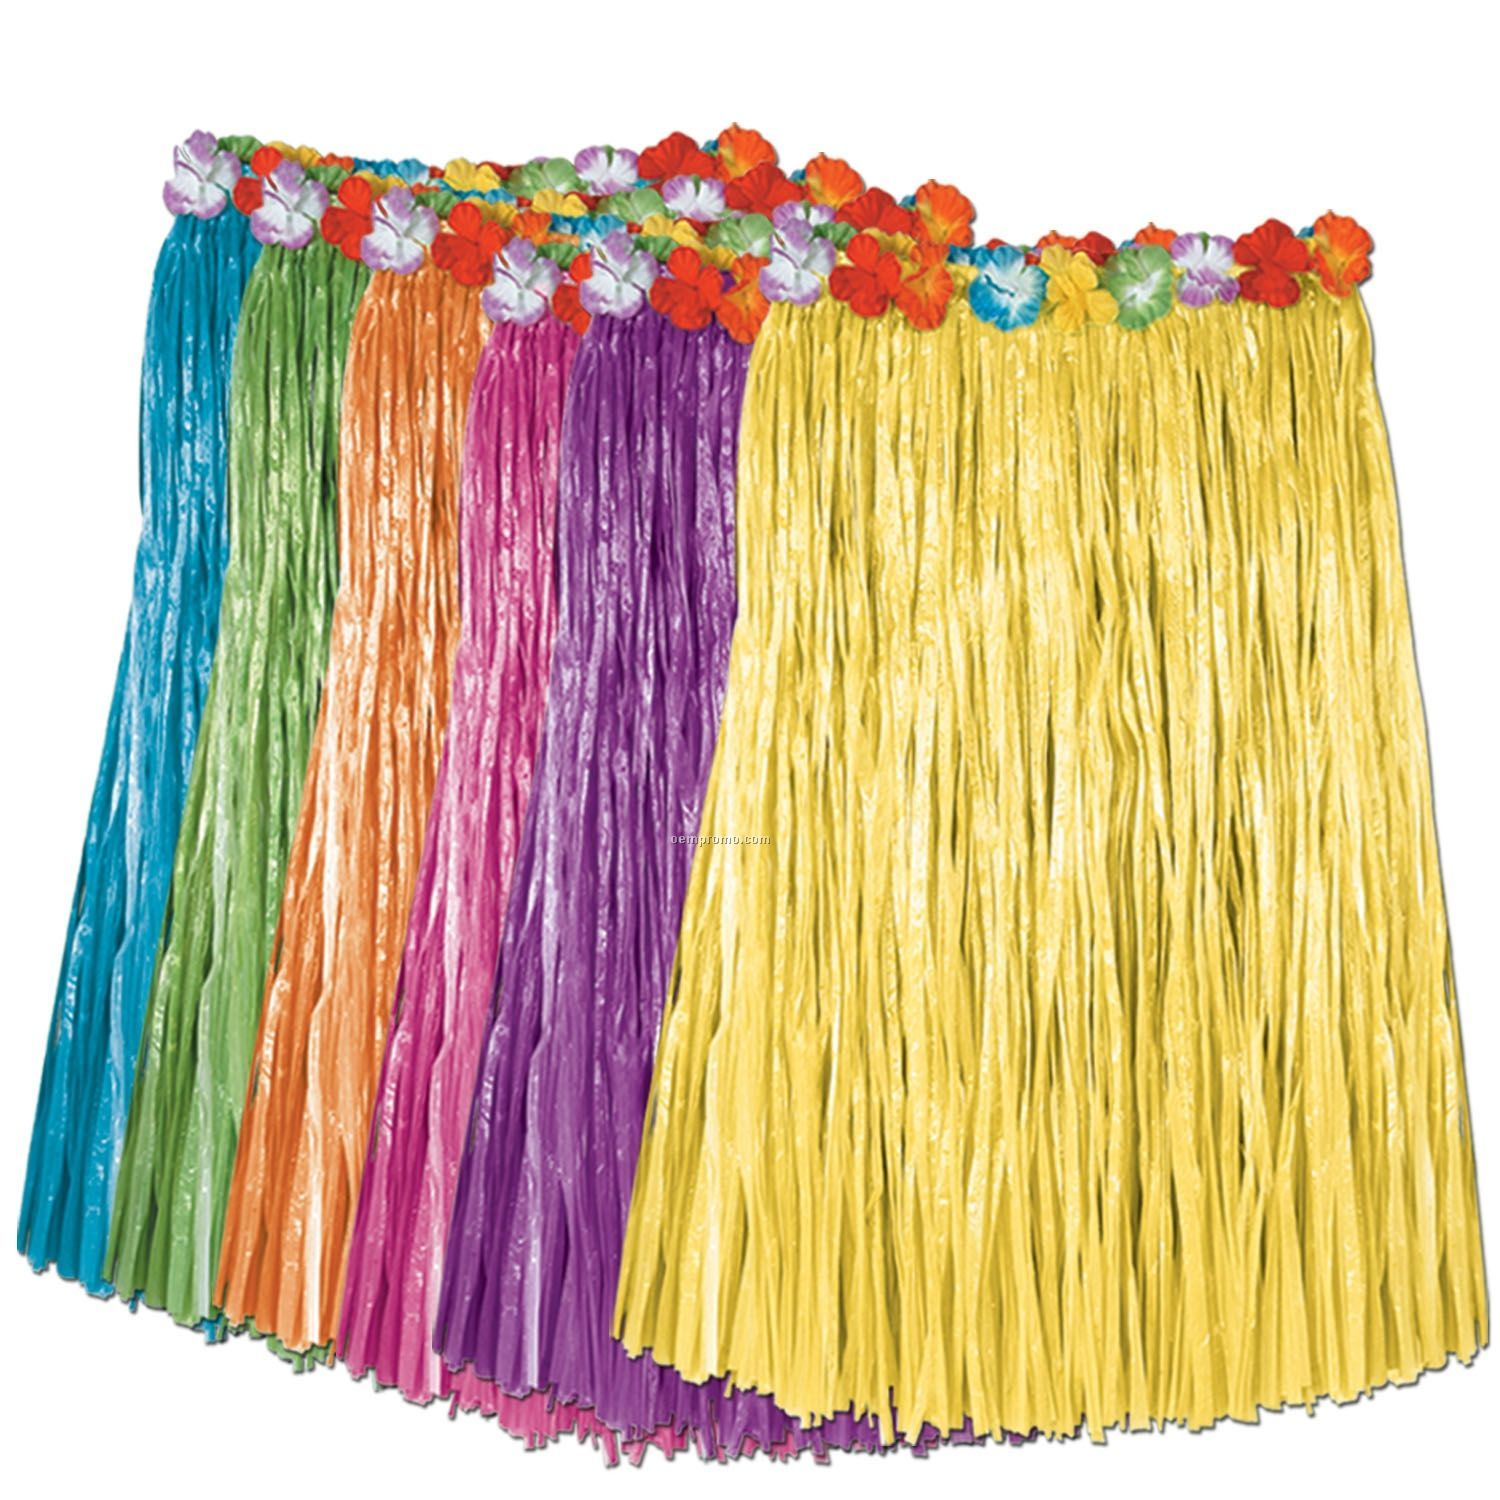 Artificial Grass Hula Skirt Assortment W/ Floral Waistband